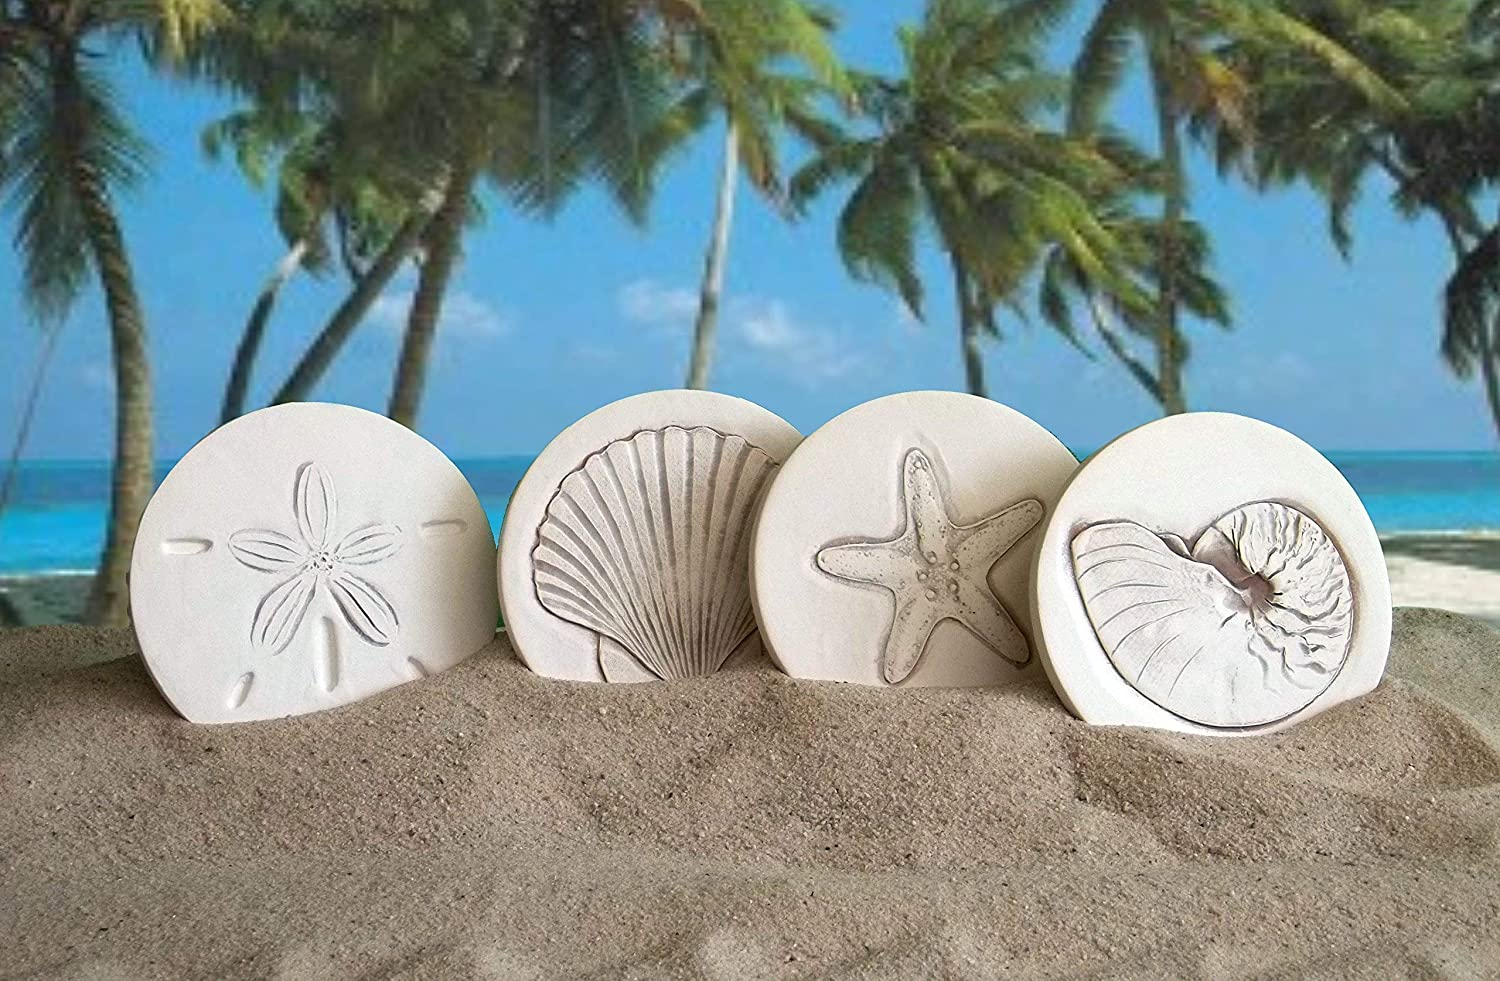 Drink Coasters by McCarter Coasters, Mixed Shells, Absorbent, Light Beige 4.25 inch (4pc)